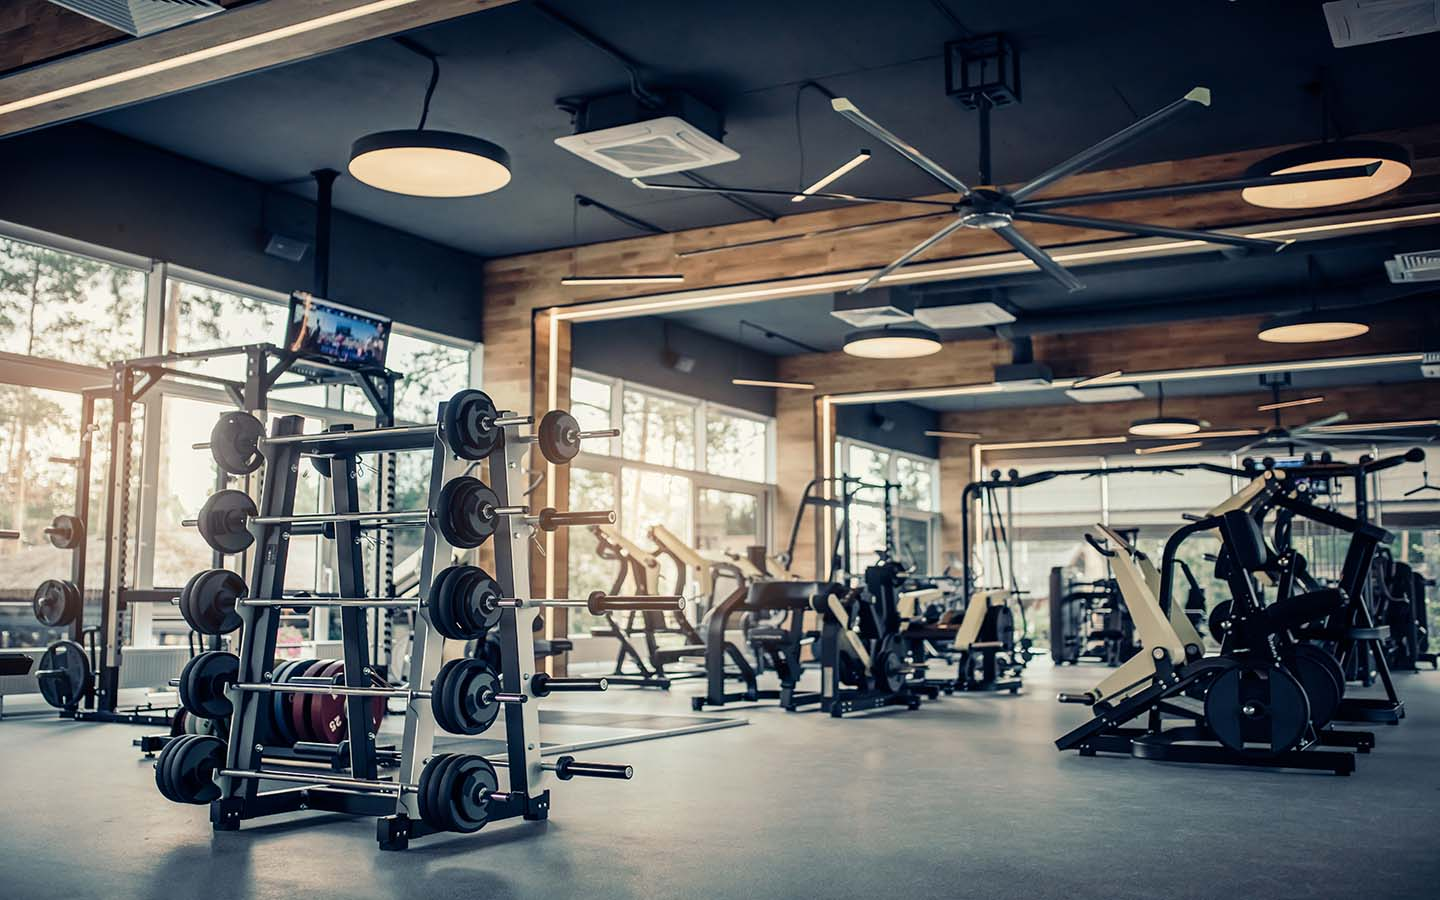 Interior of one of the Gyms in Dubai Silicon Oasis